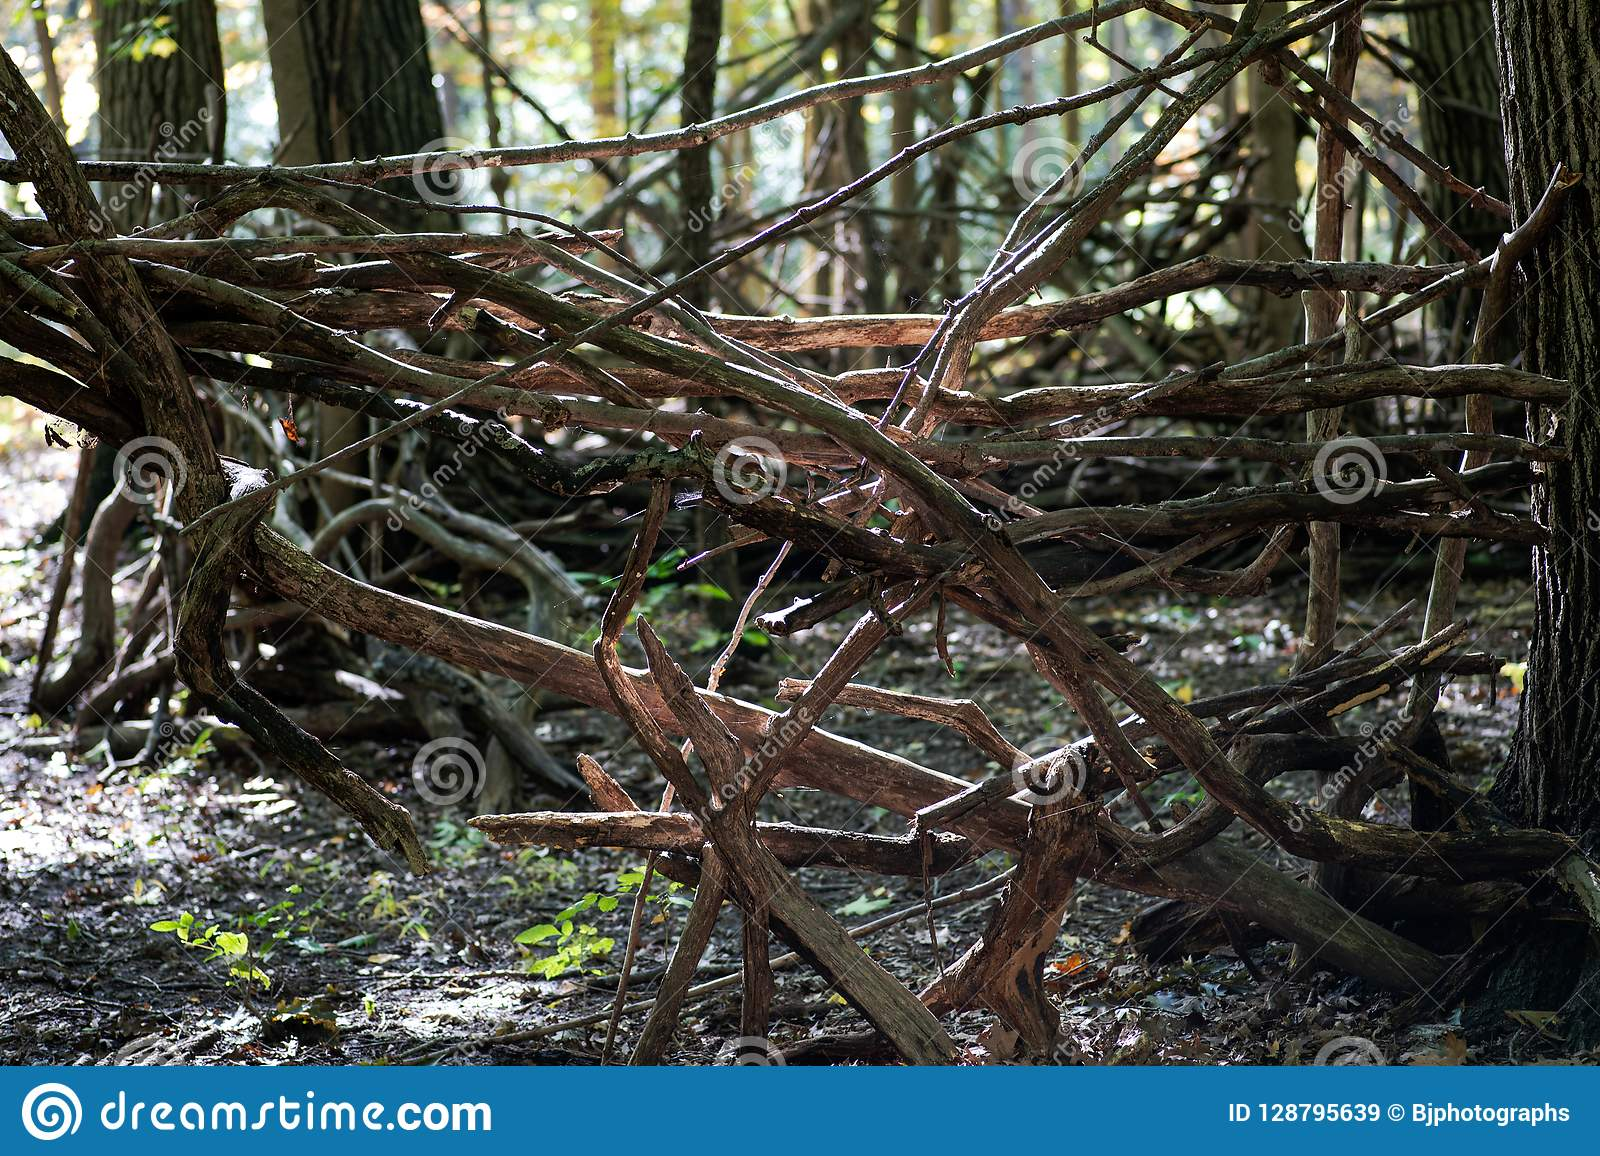 A shelter made of wood branches in forest